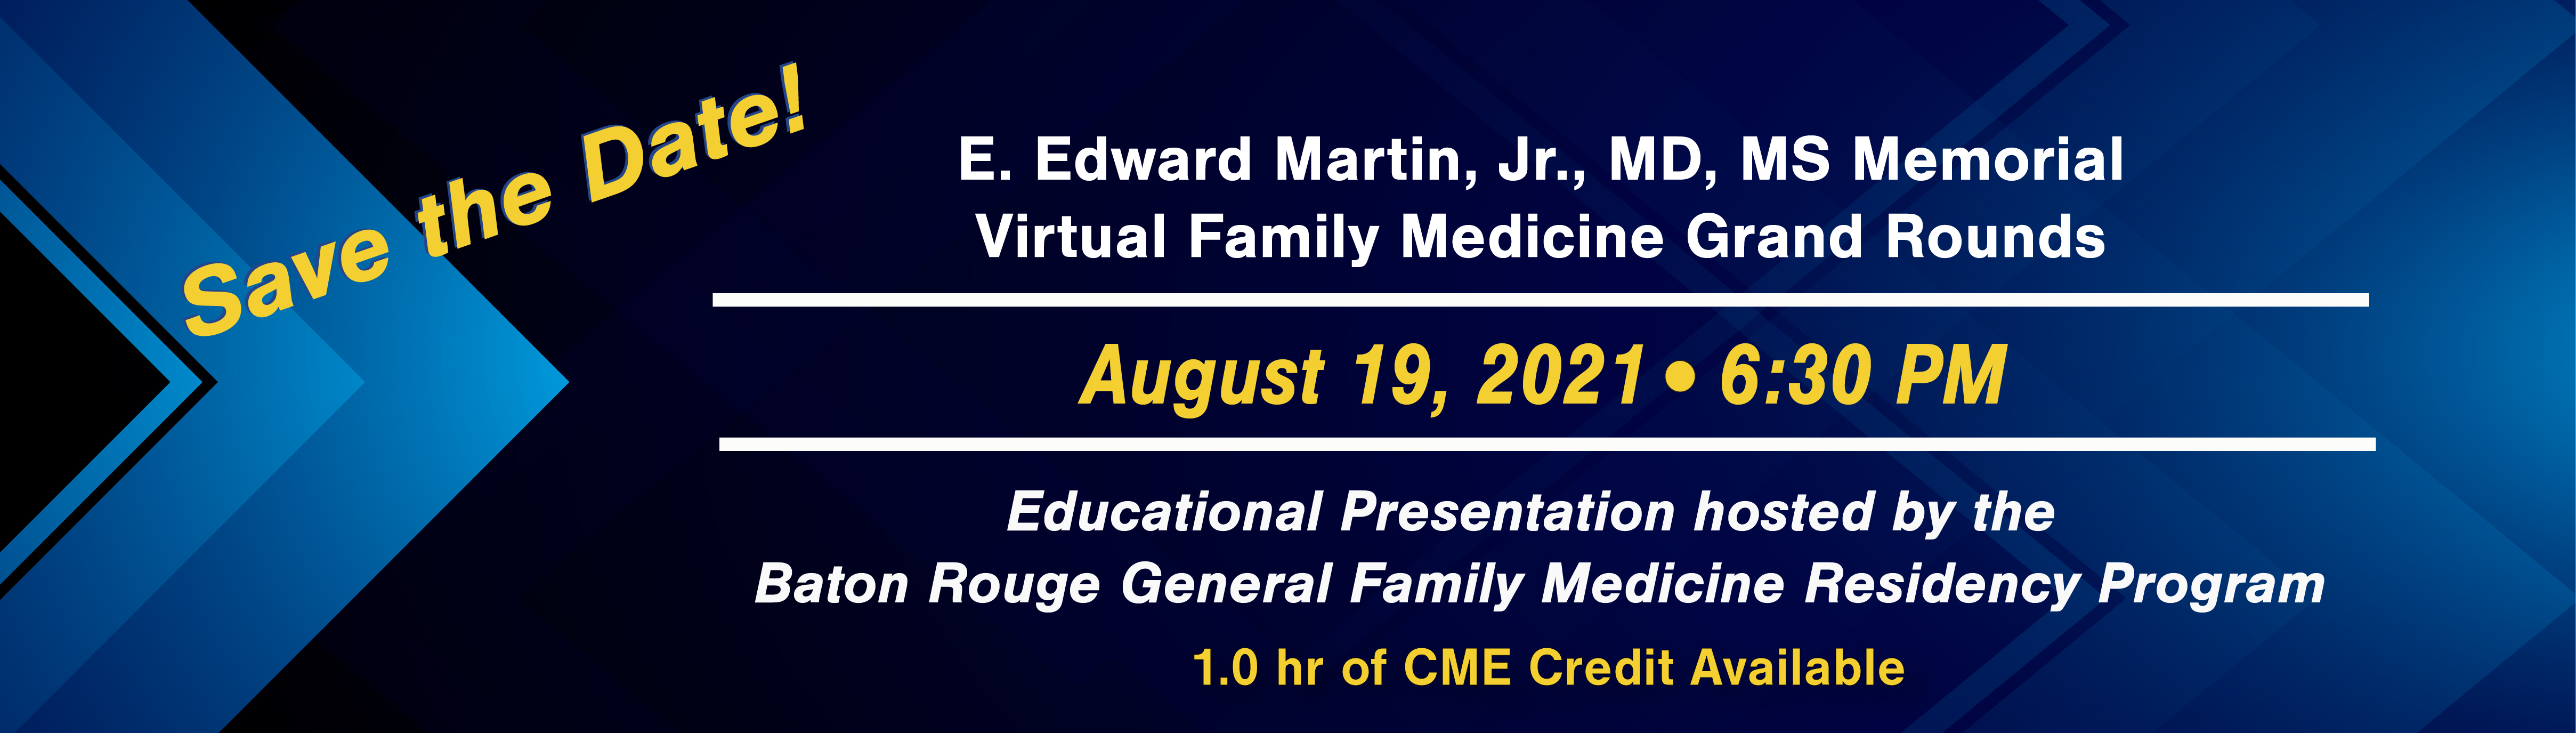 Grand_Rounds_web_banner